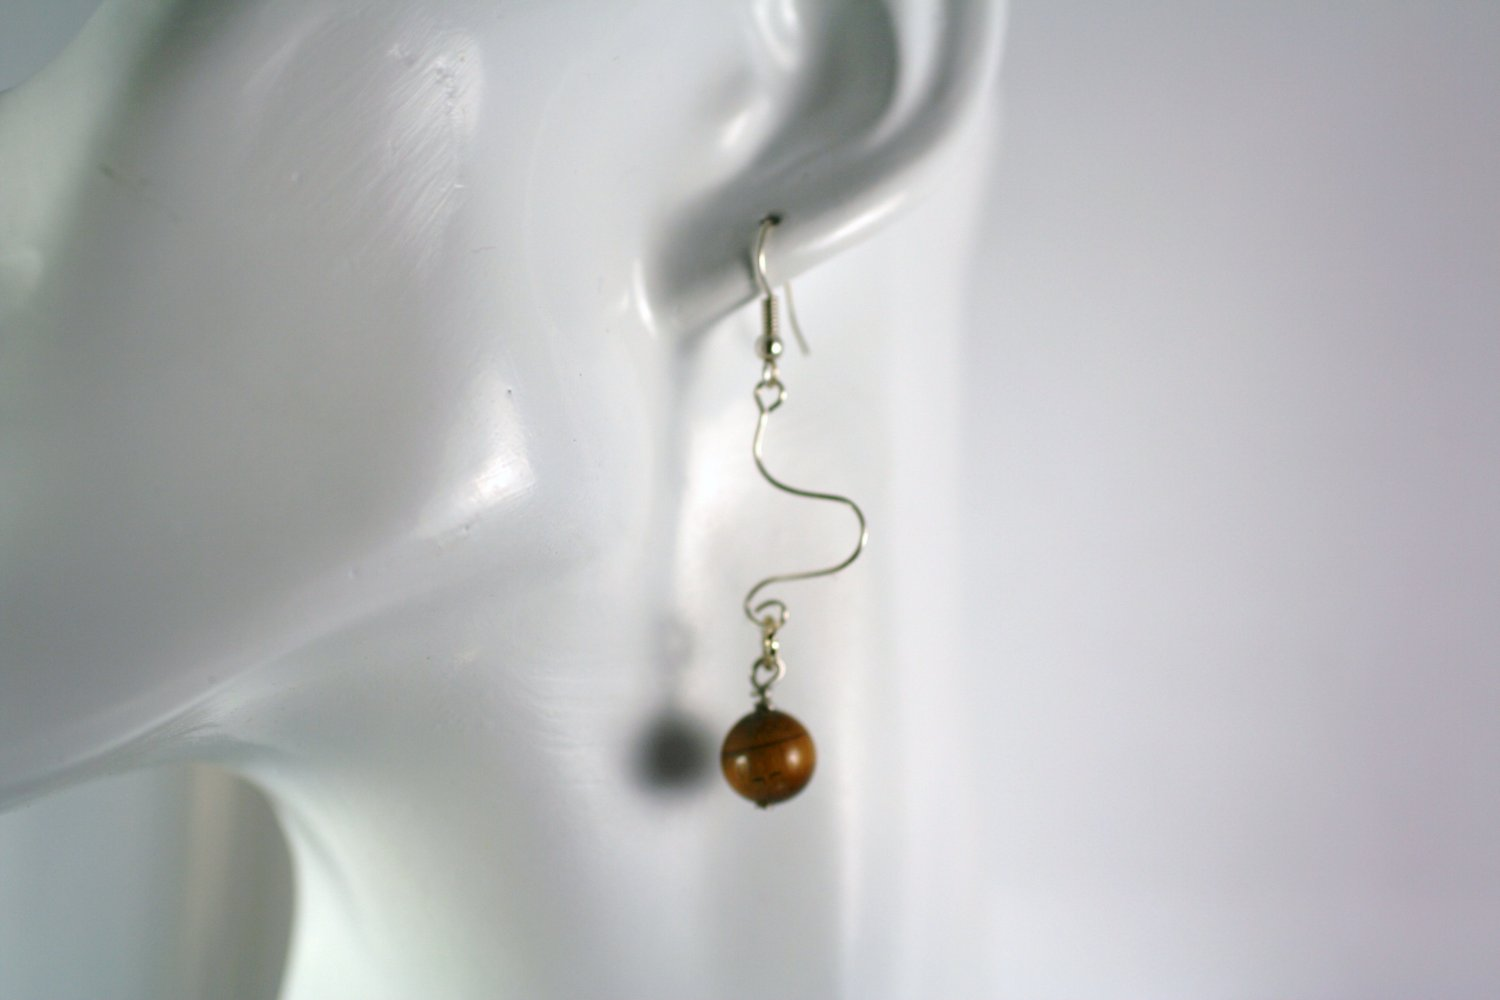 Silver Dangle Wavy Drop Earrings with Tigers Eye Beads     Handcrafted Jewelry